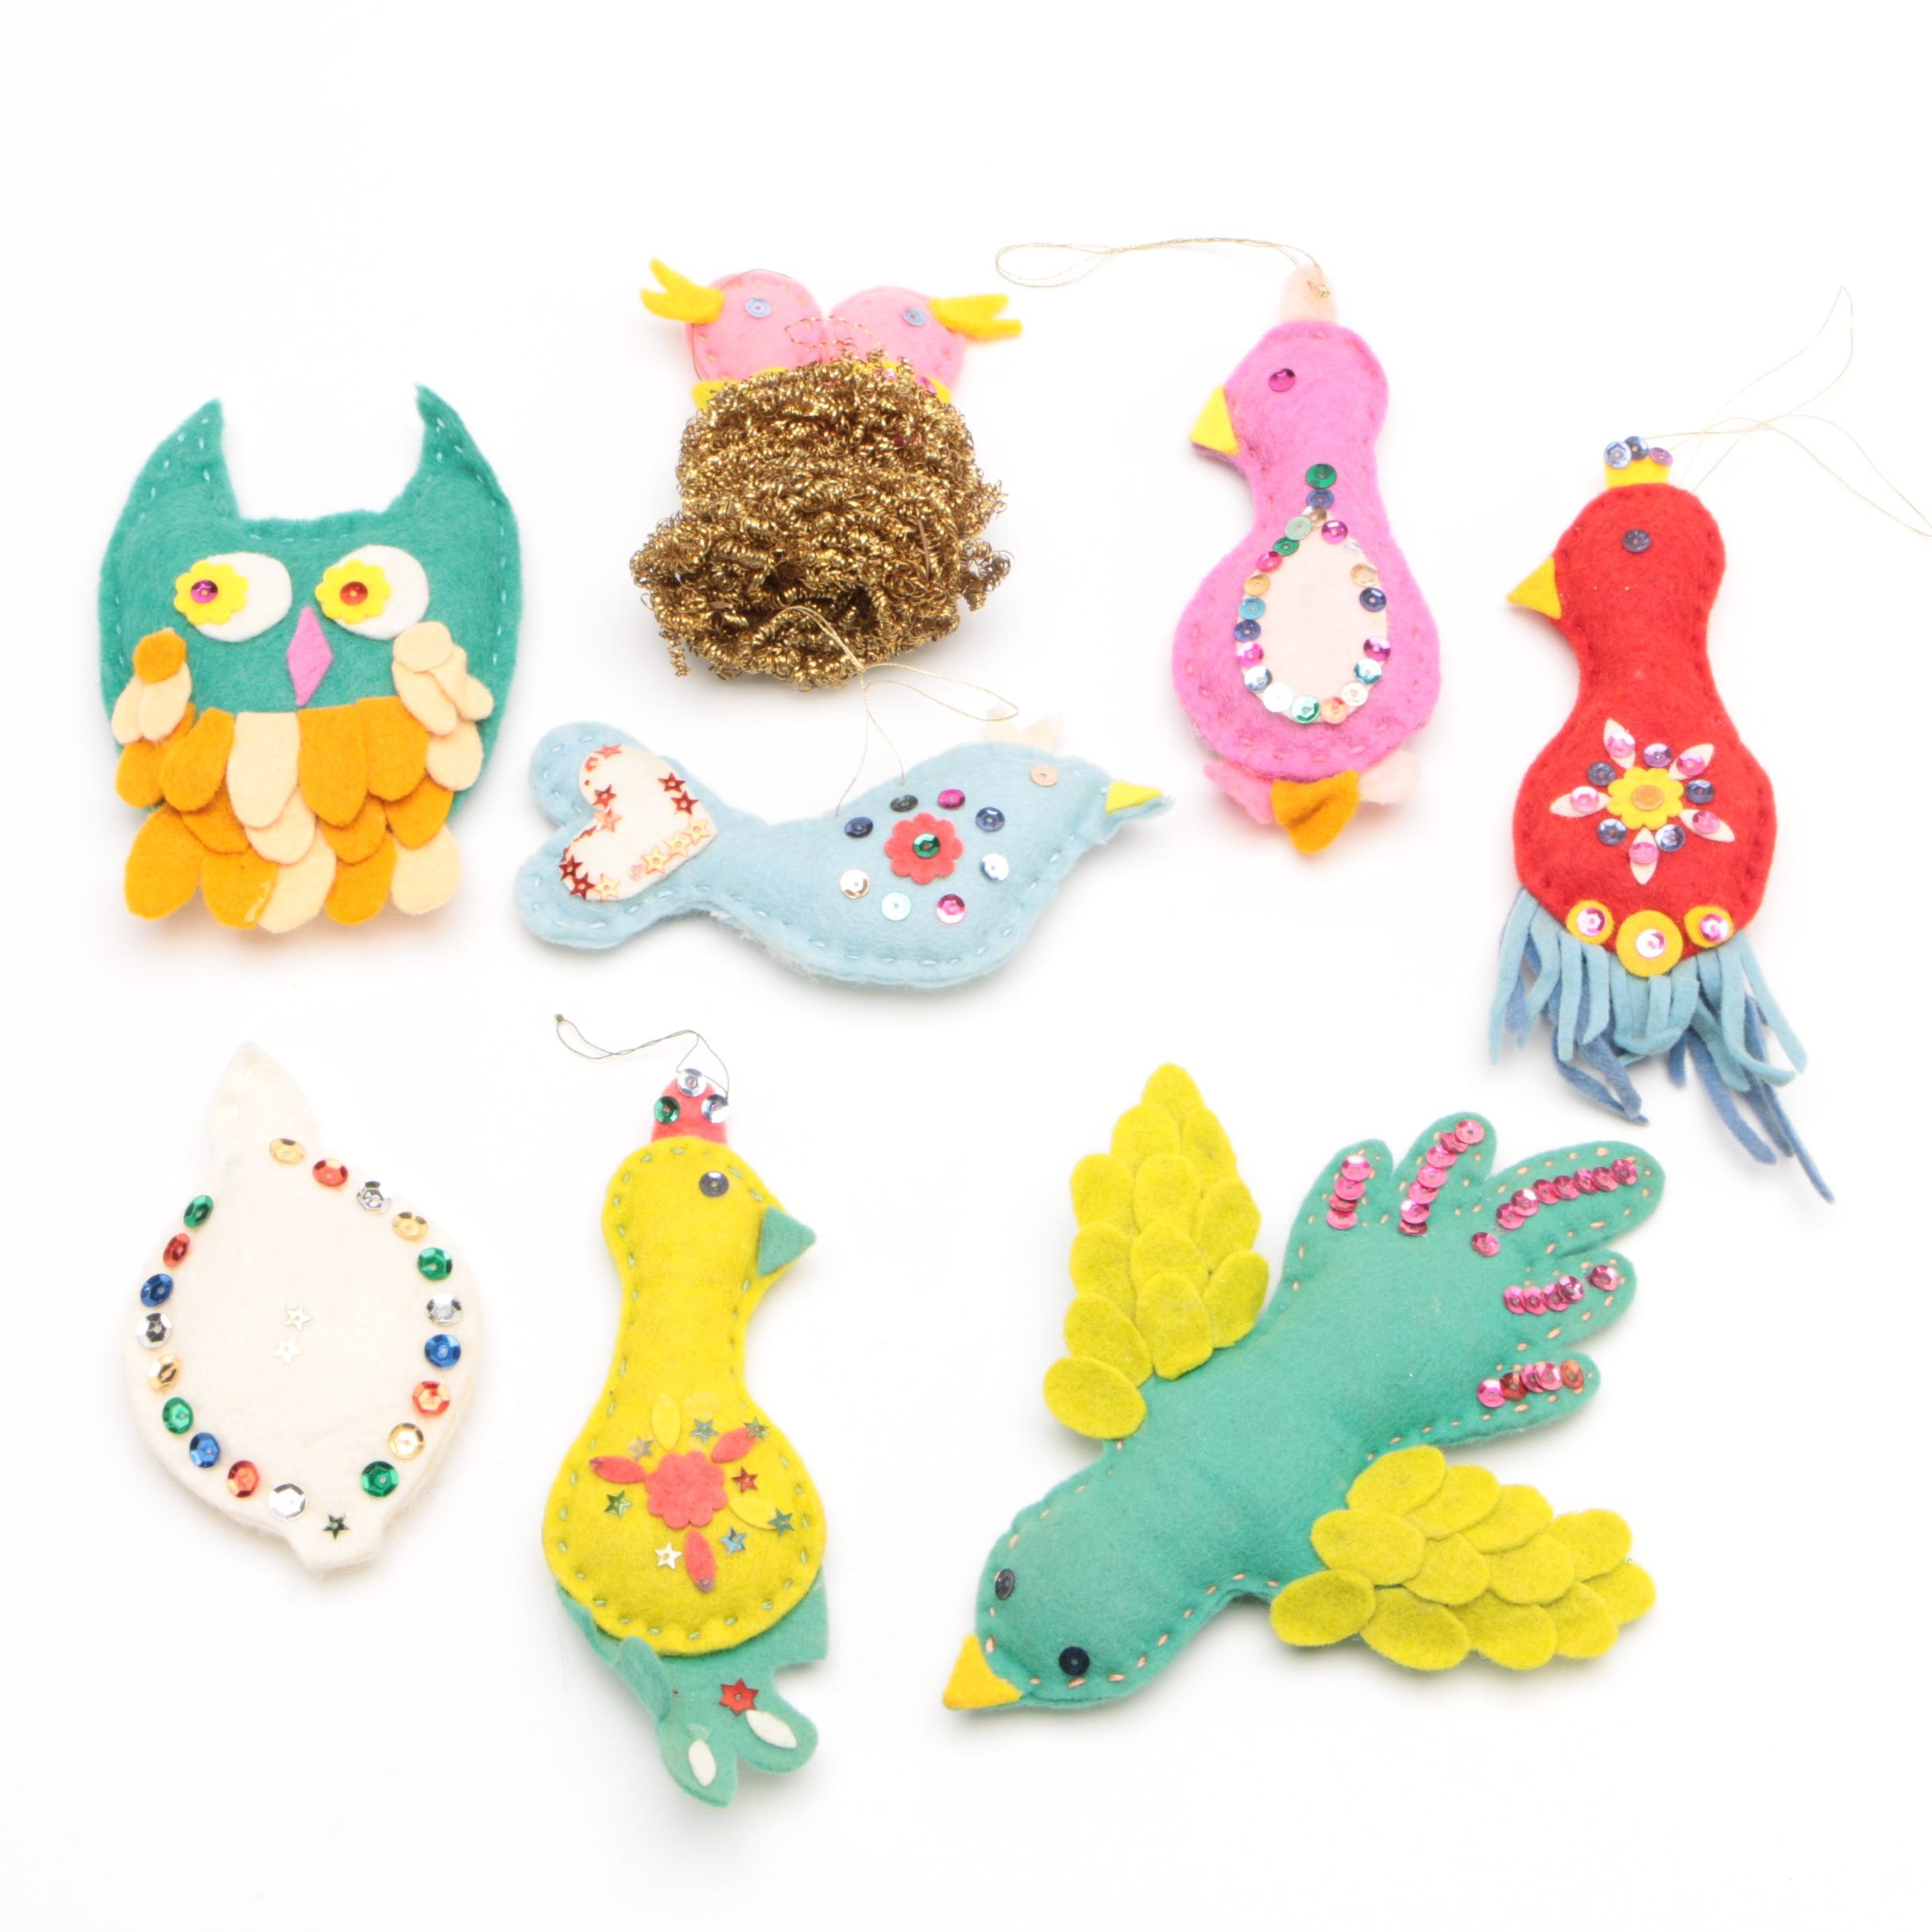 Hand Crafted Felt Bird Ornaments with Sequin Detailing